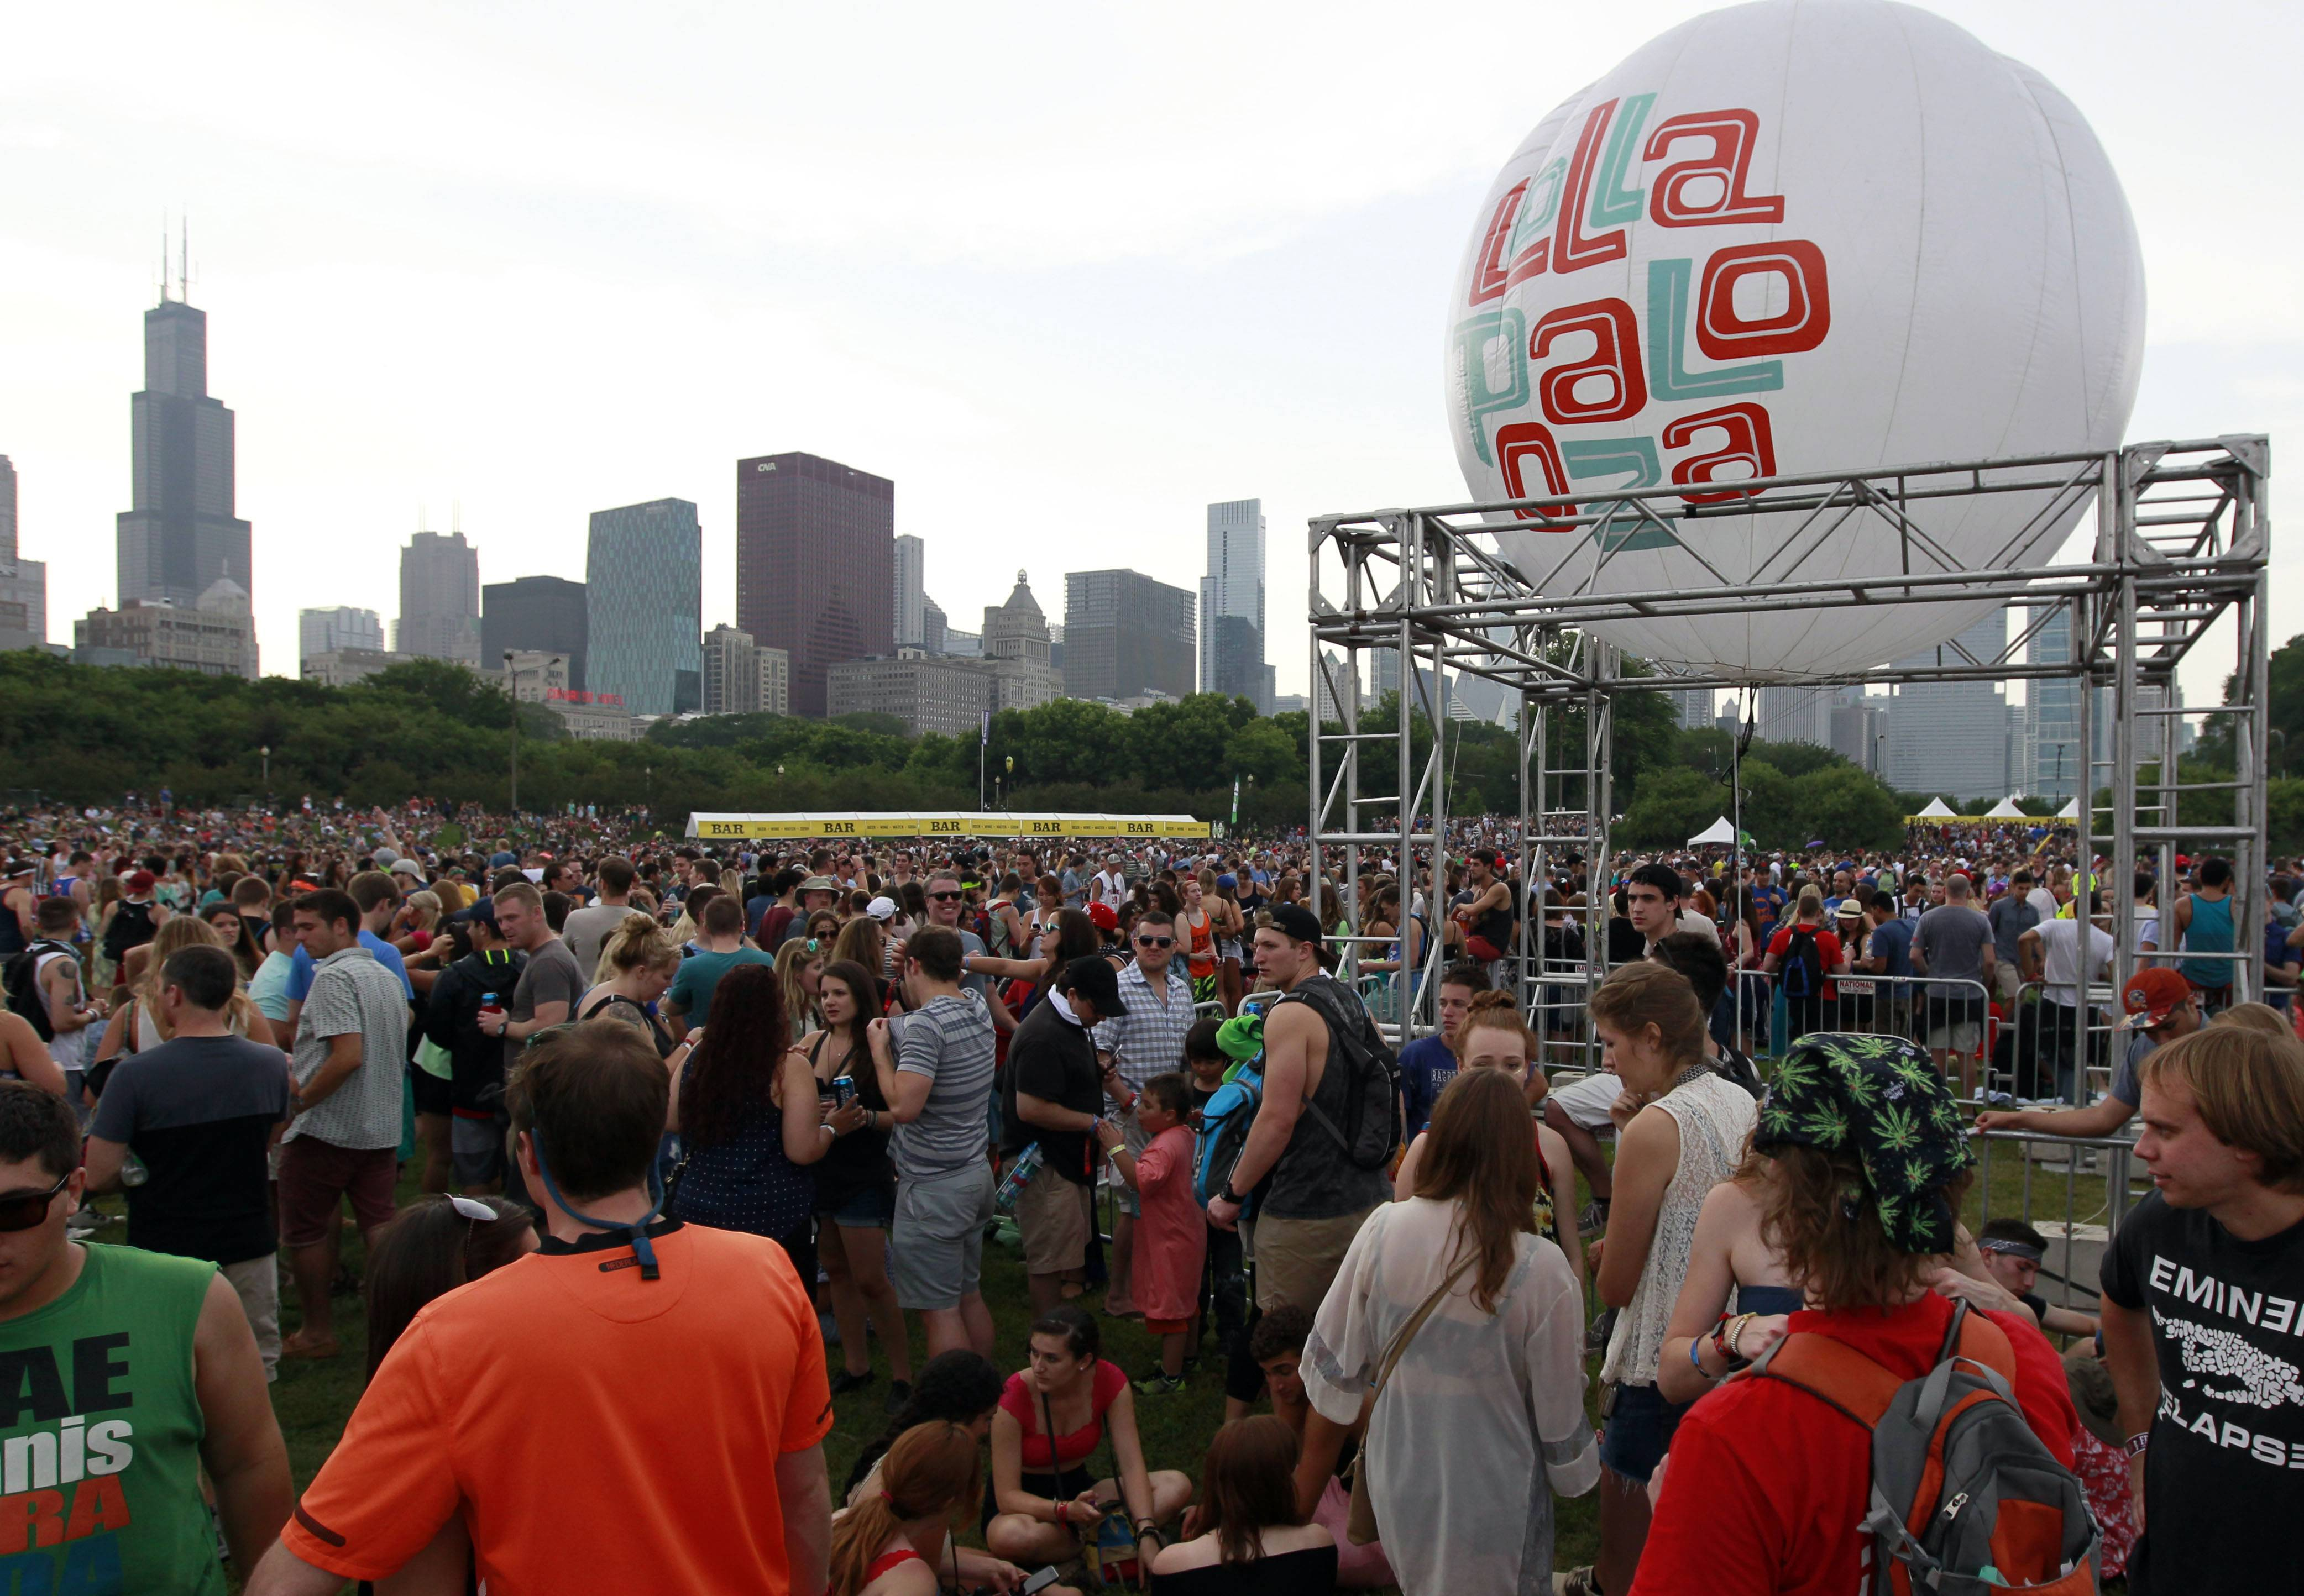 People wait for the band Chvrches to take the stage Friday during Lollapalooza. Once the vagabond of the music festival and touring circuit, Lollapalooza marks its 10th anniversary in Chicago.